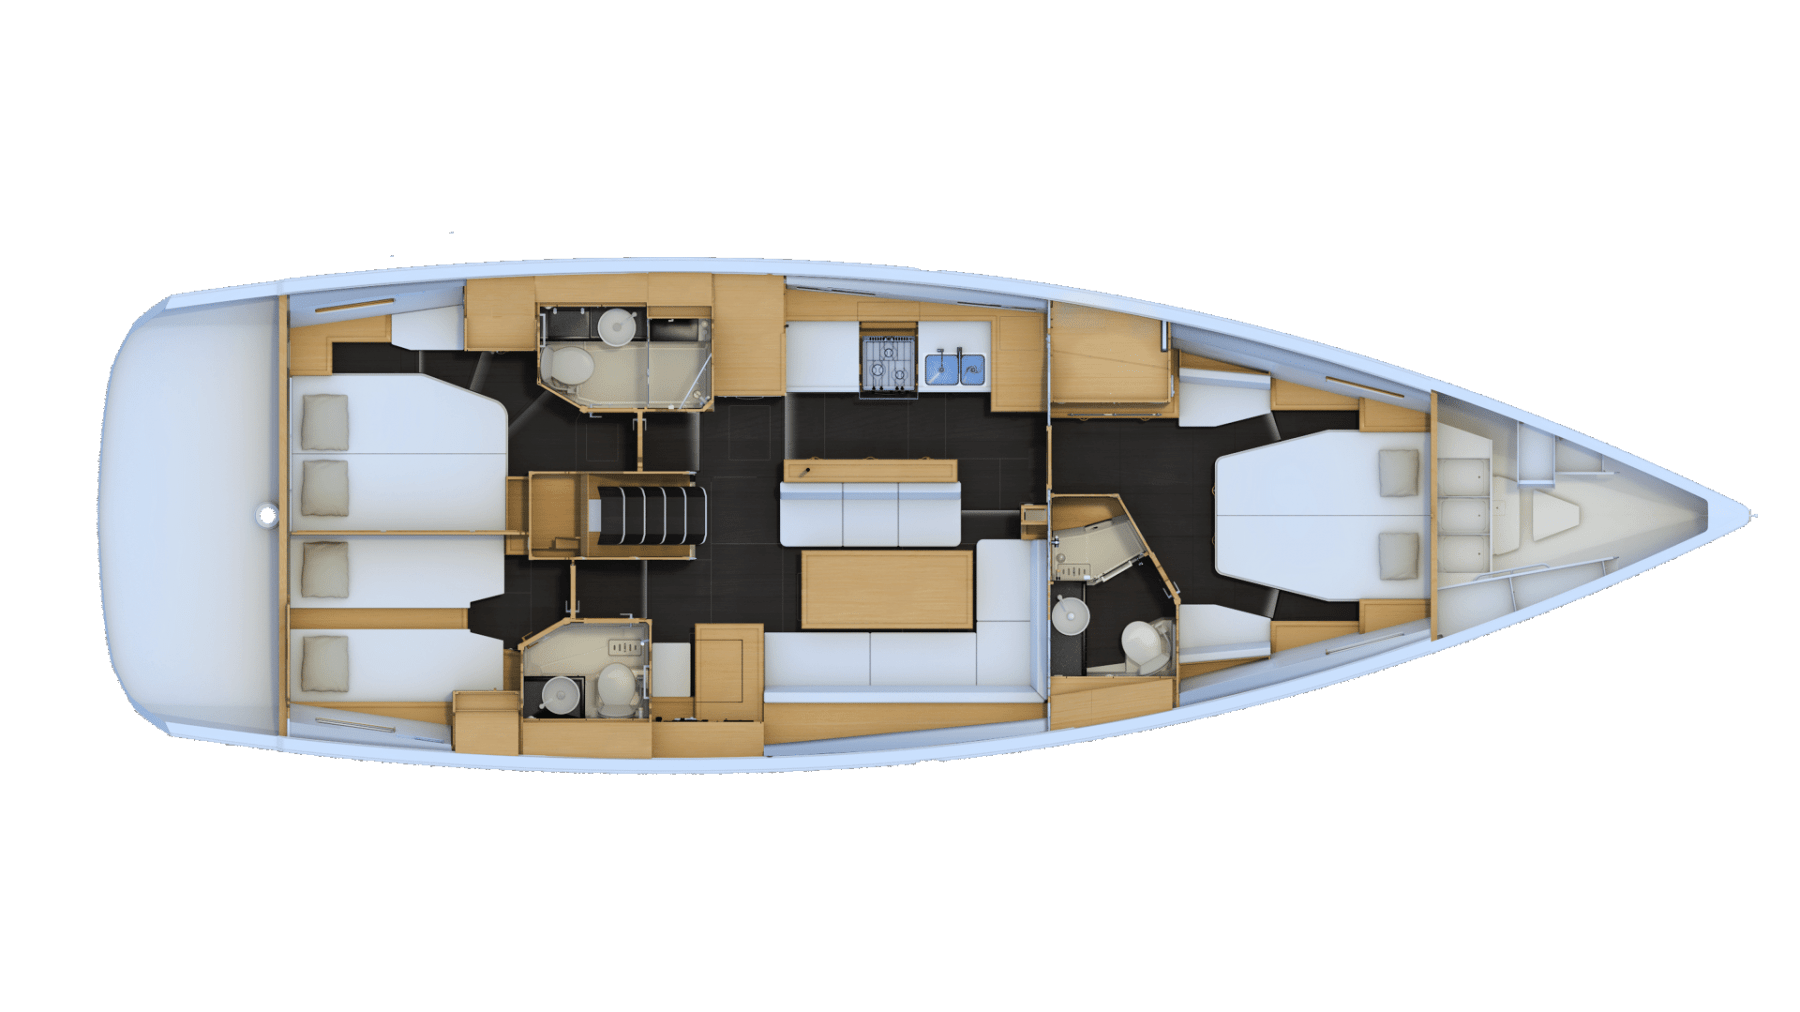 Jeanneau-54-layout-2-charter-ownership-yacht